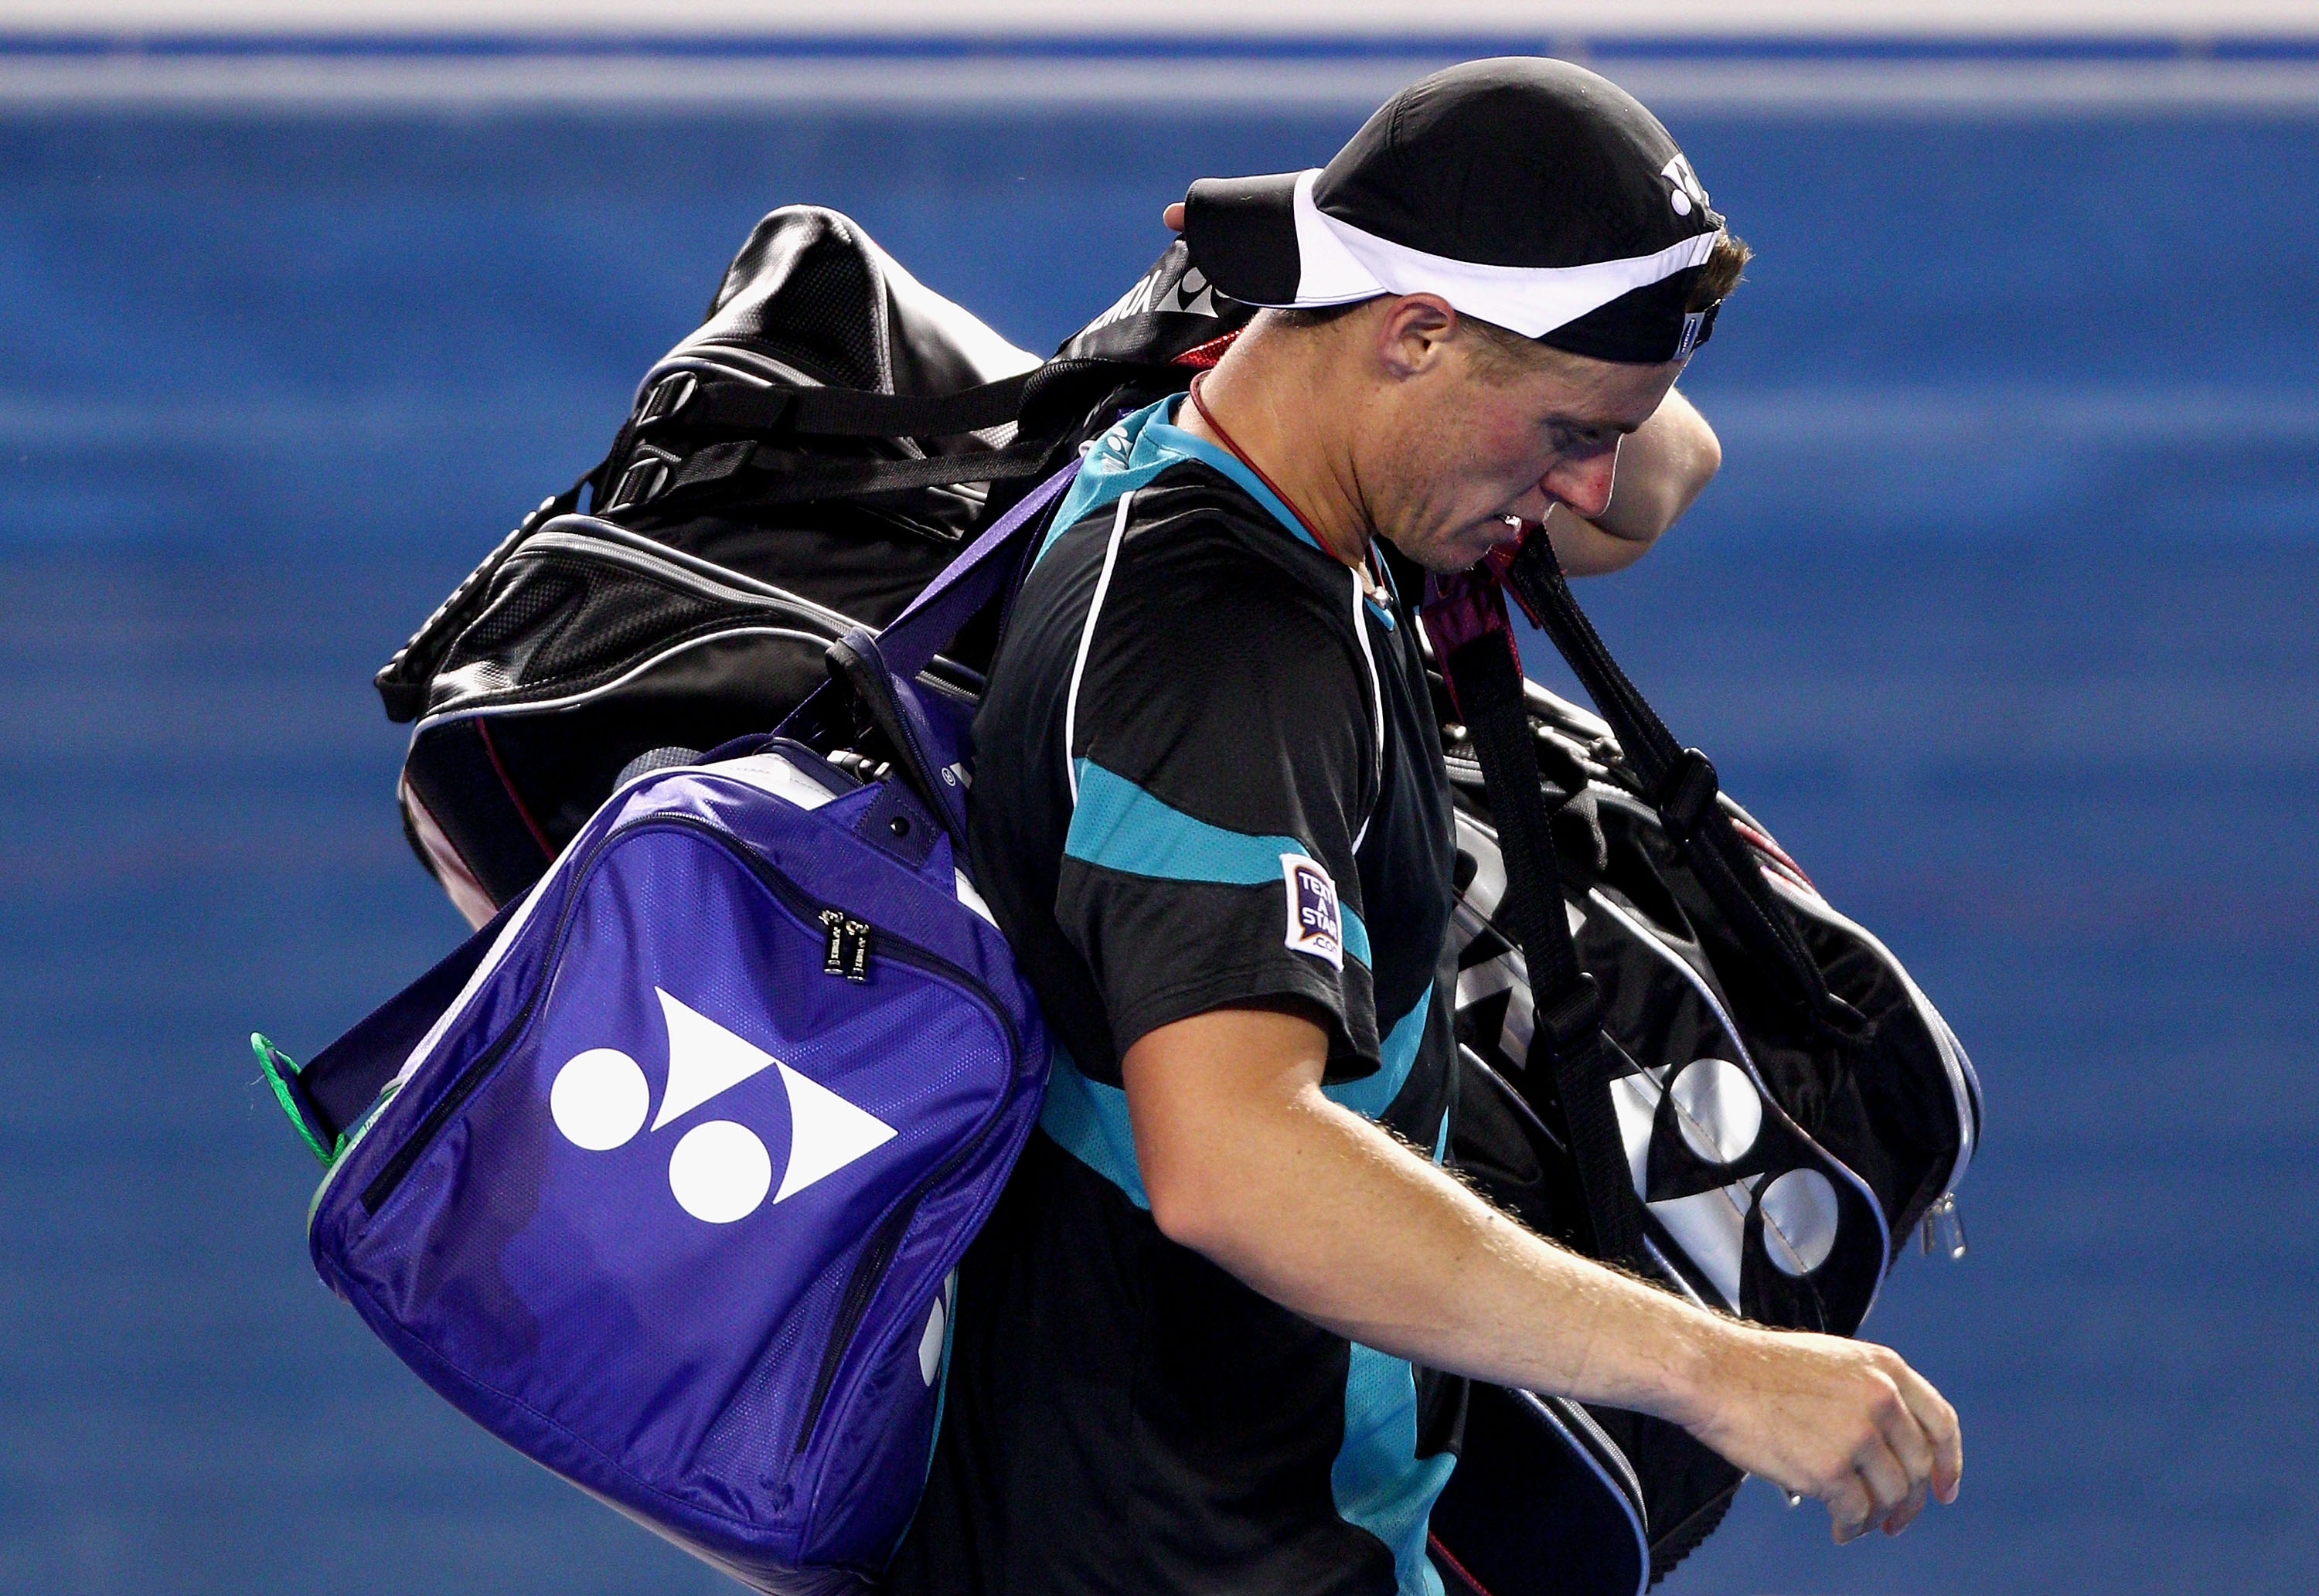 MELBOURNE, AUSTRALIA - JANUARY 18:  Lleyton Hewitt of Australia walks off Rod Laver Arena after losing his first round match against David Nalbandian of Argentina during day two of the 2011 Australian Open at Melbourne Park on January 18, 2011 in Melbourn